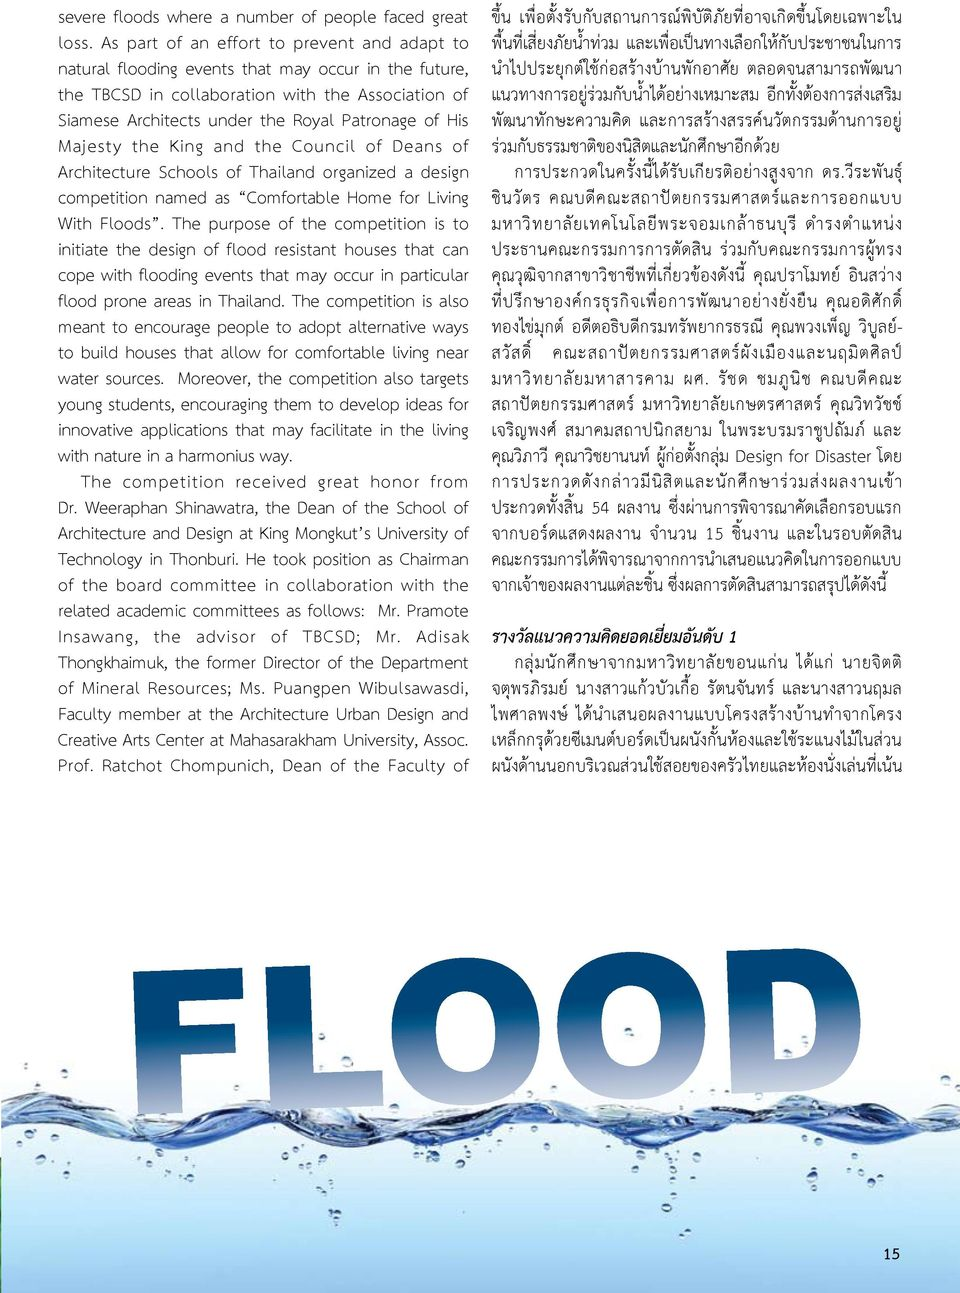 His Majesty the King and the Council of Deans of Architecture Schools of Thailand organized a design competition named as Comfortable Home for Living With Floods.